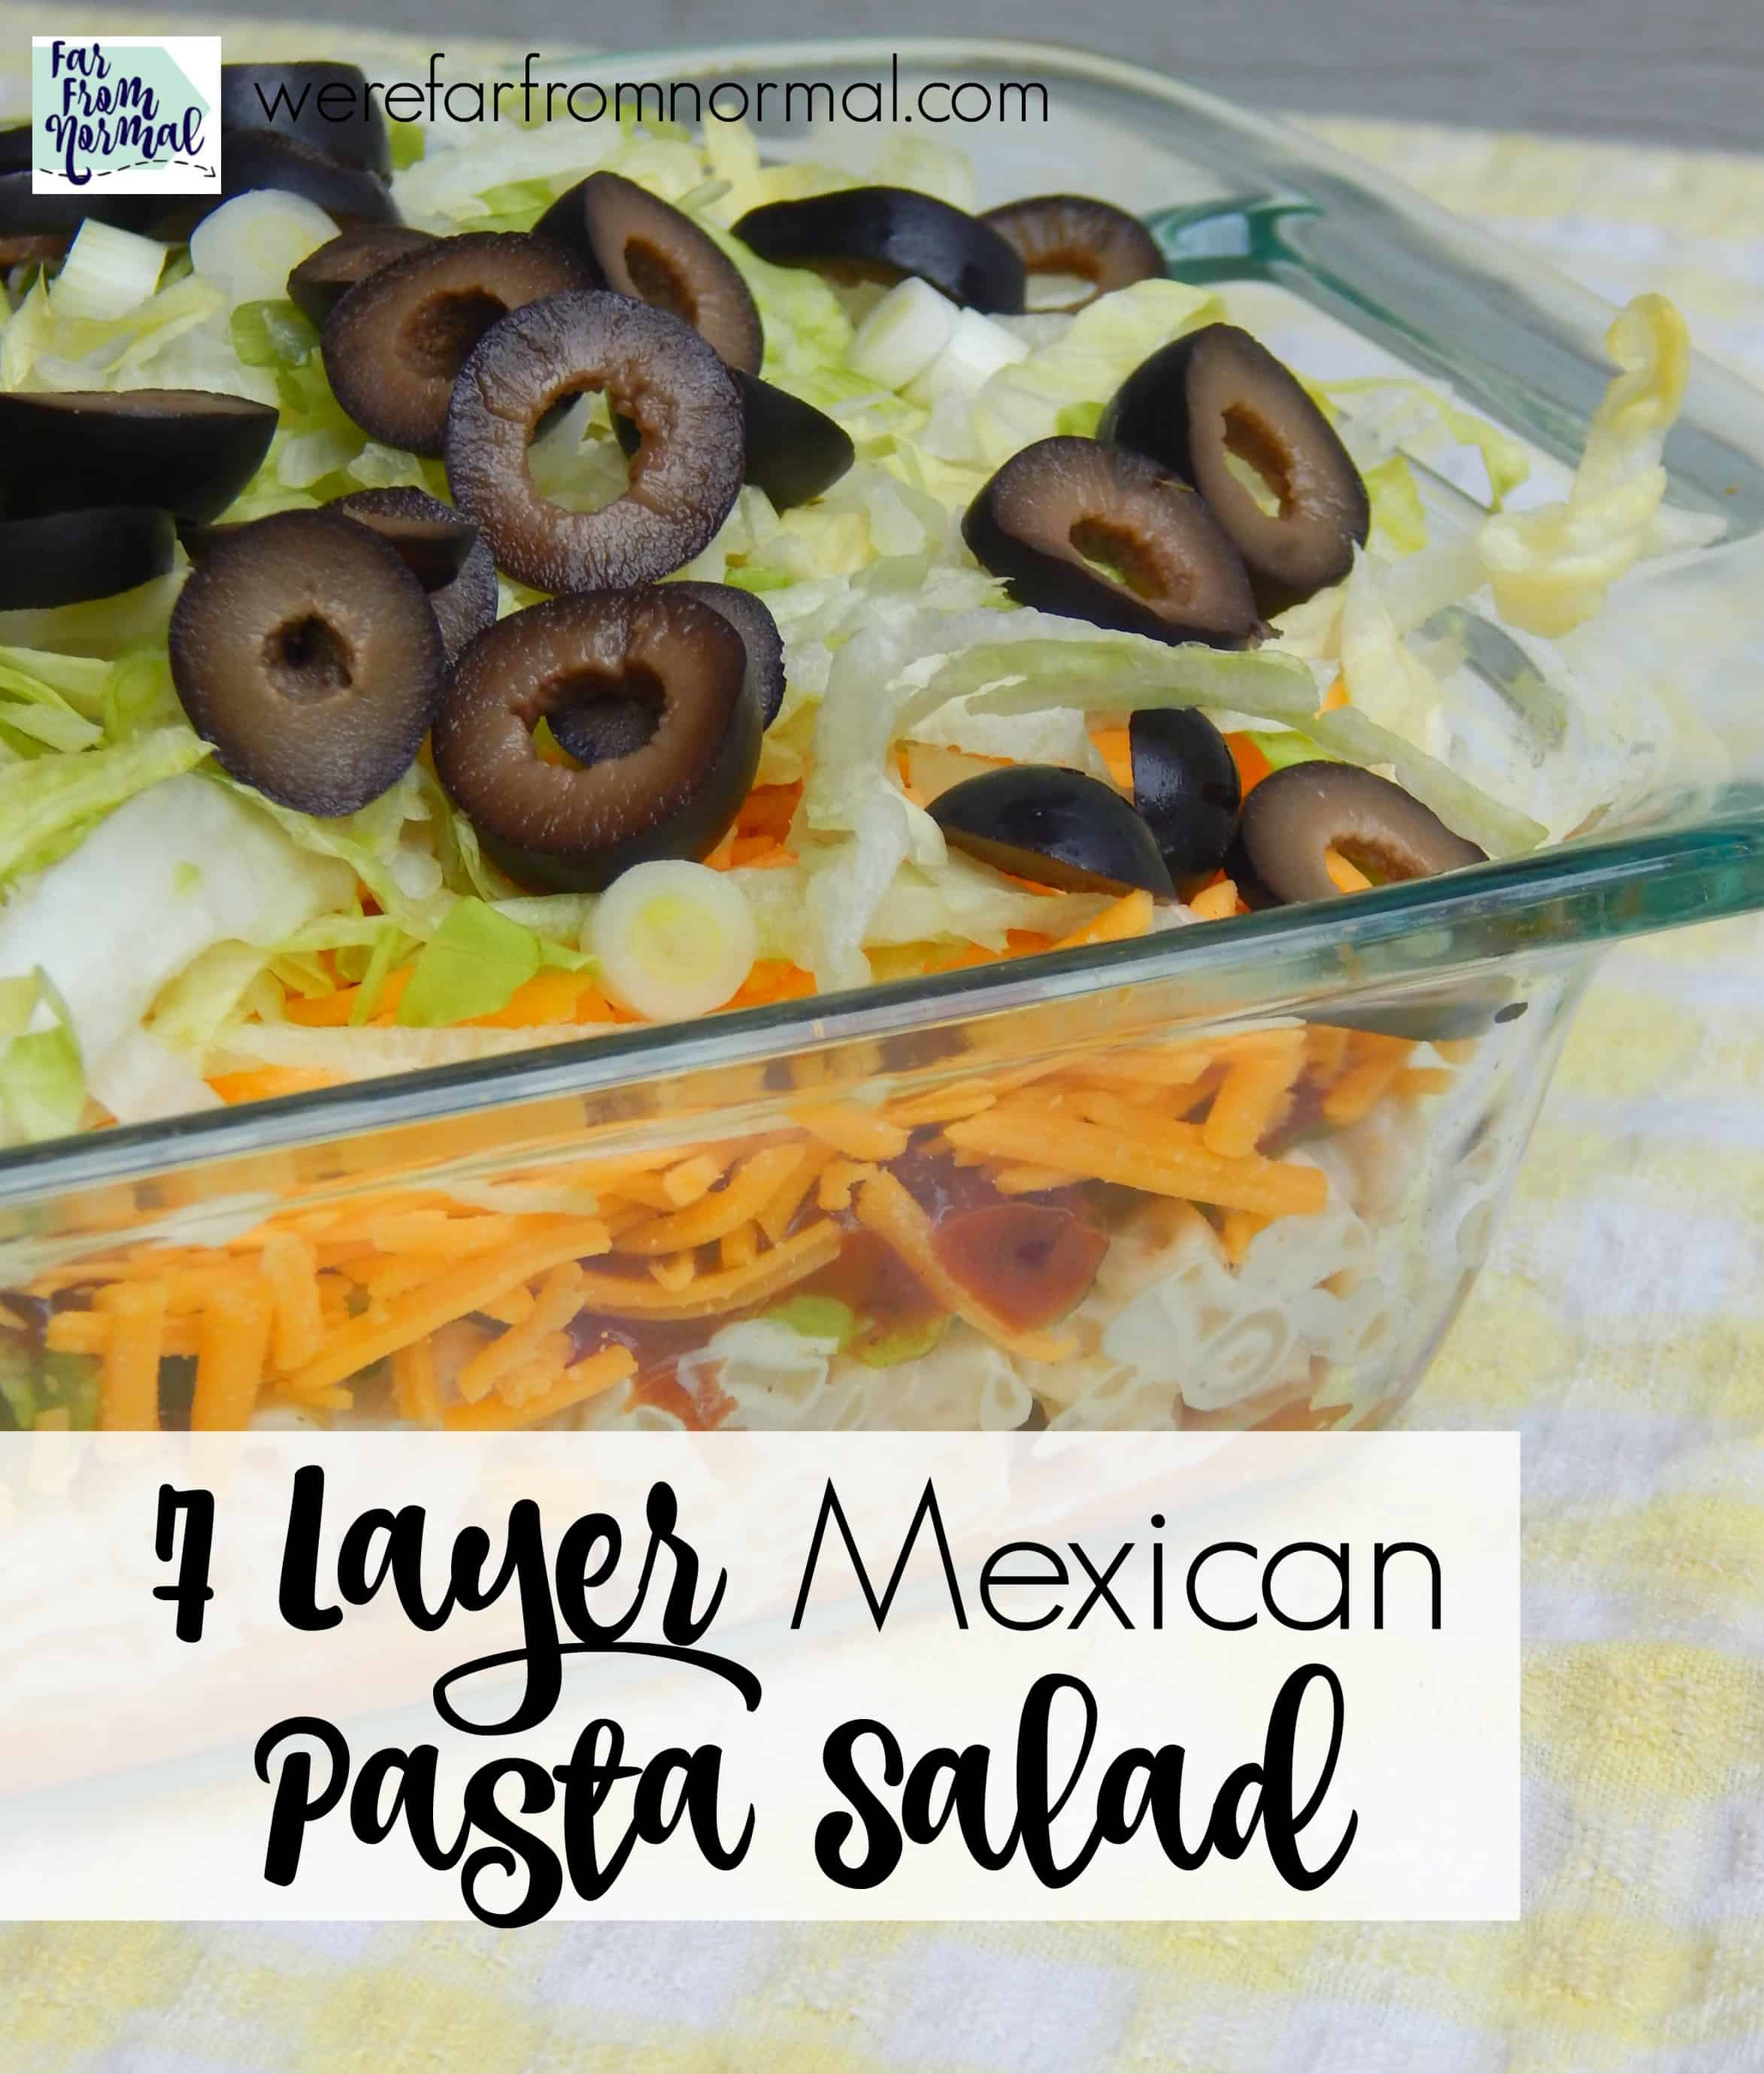 7 Layer Mexican Pasta Salad